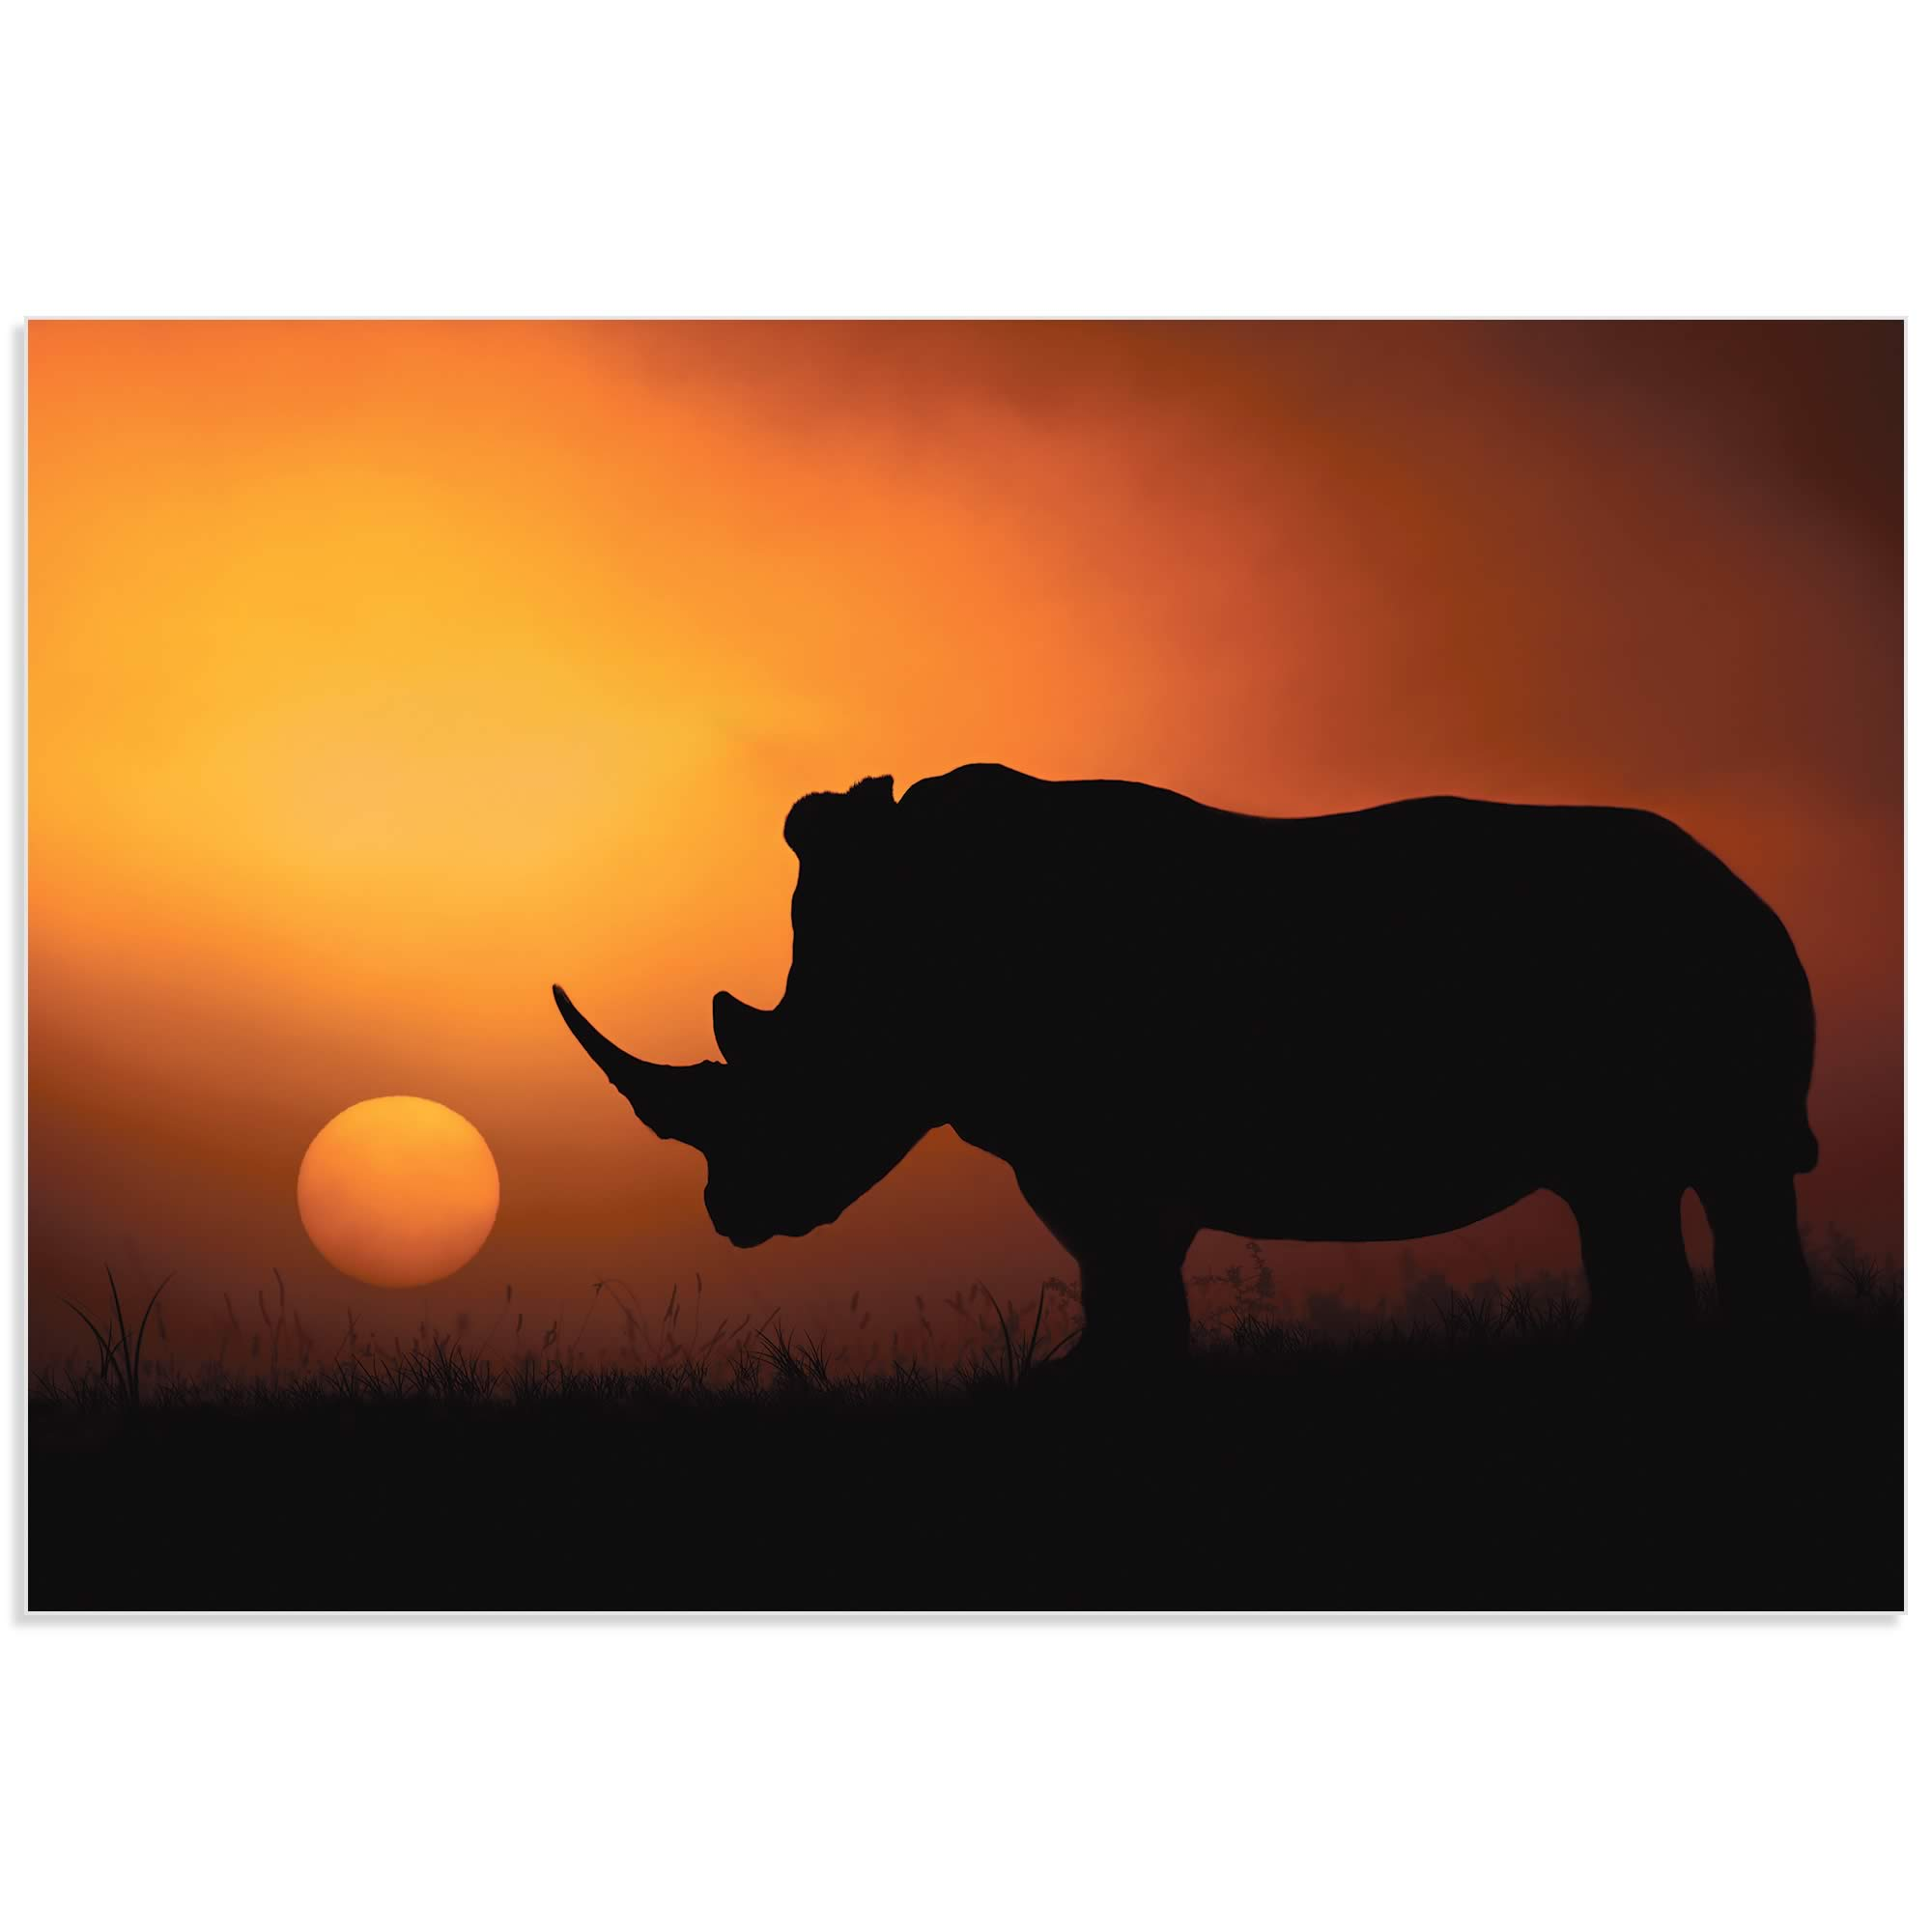 Rhino Sunrise by Mario Moreno - Rhino Silhouette Art on Metal or Acrylic - Alternate View 2